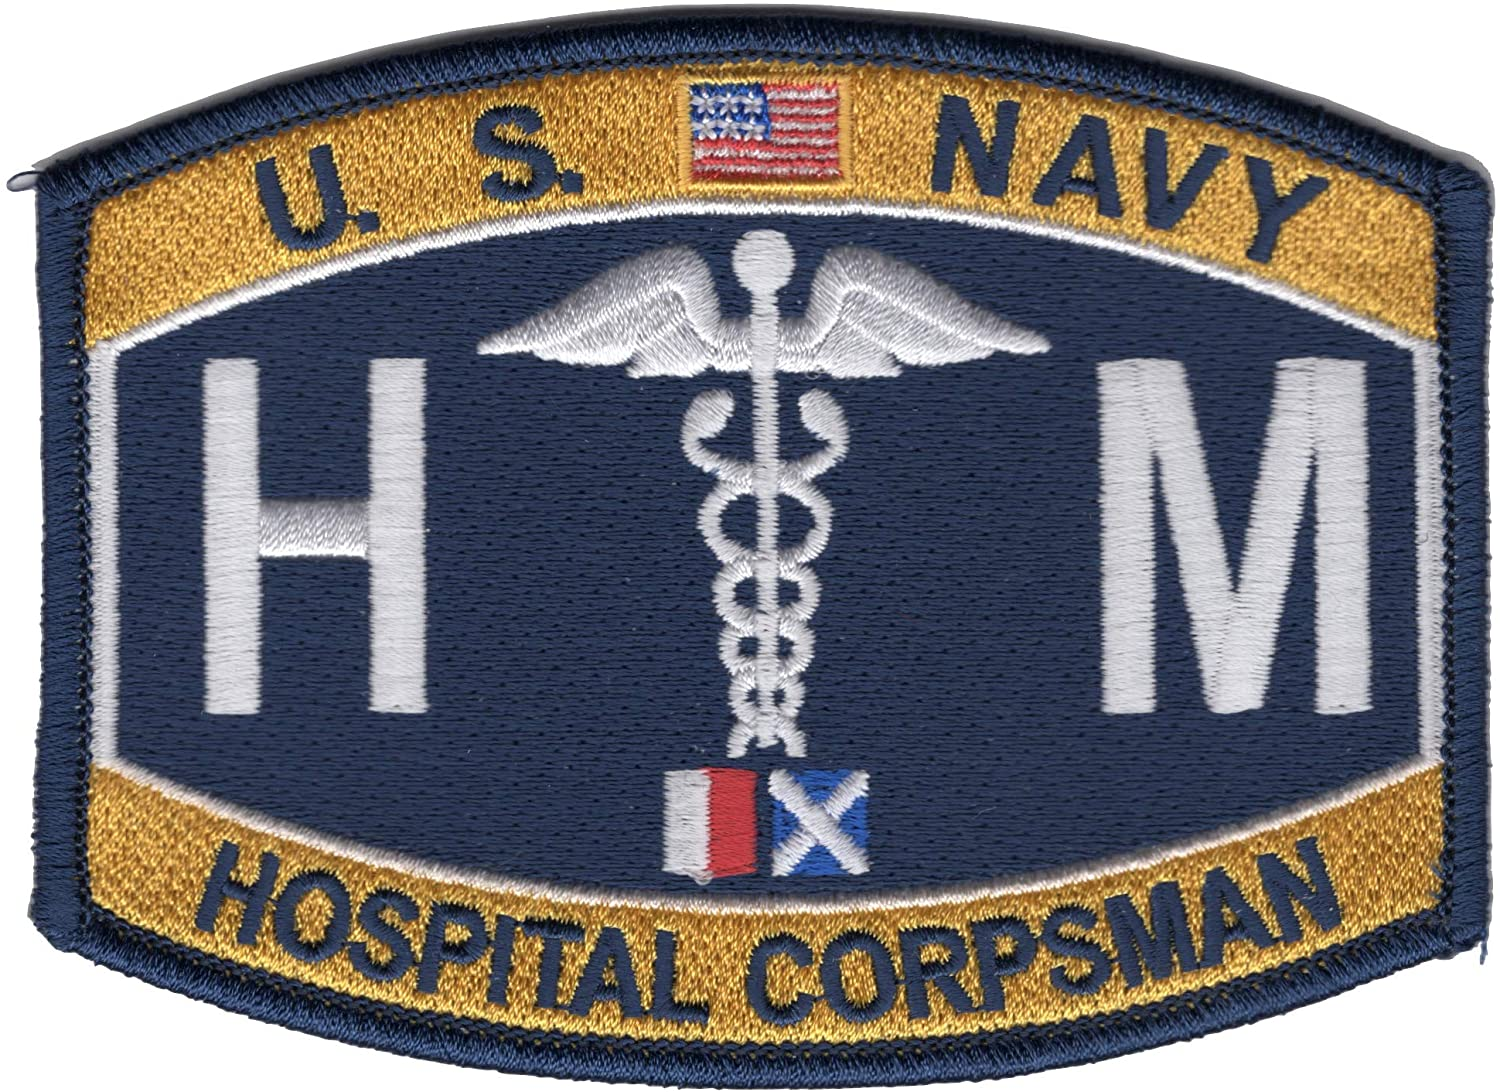 Navy Rating Hospital Corpsman Patch - HM